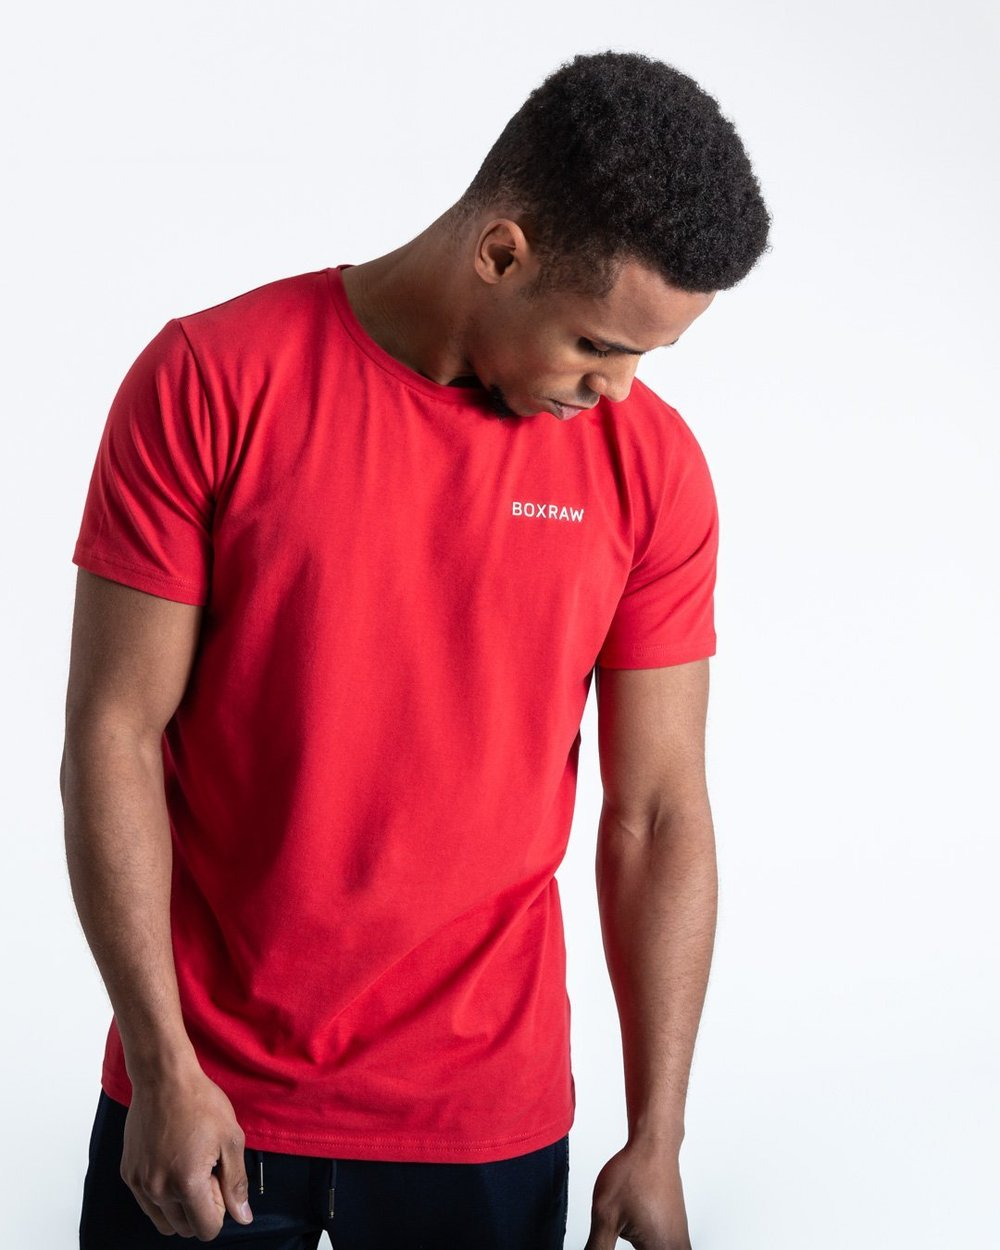 BOXRAW LOGO T-SHIRT - RED - Pandemic Fight Gear Inc.